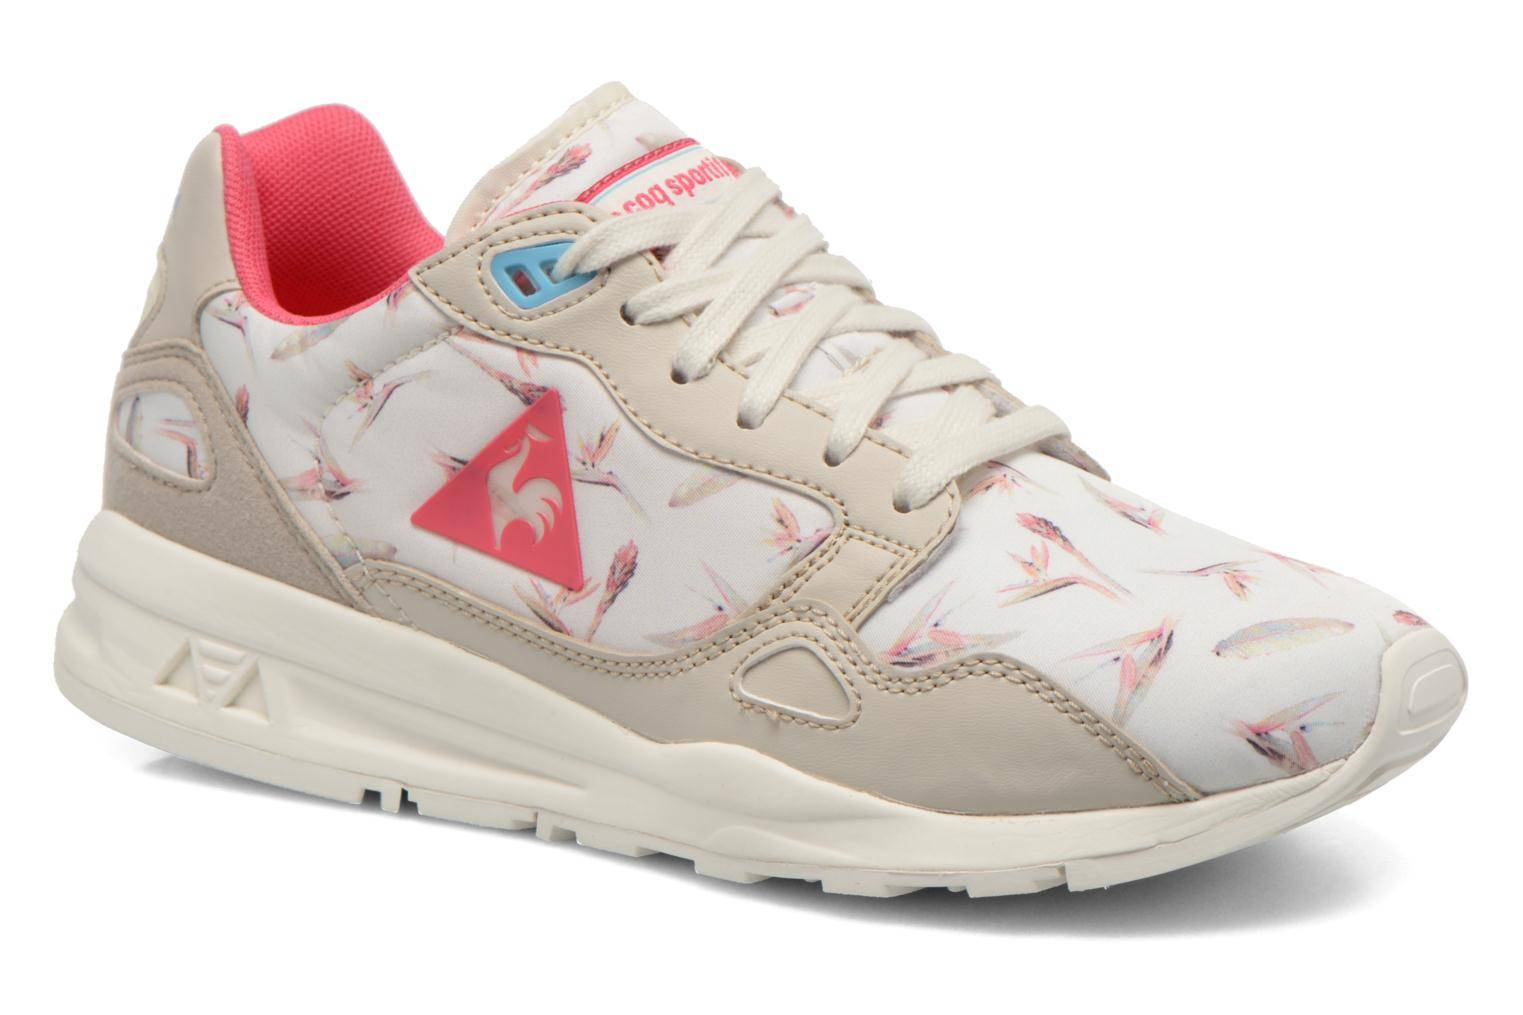 Le Coq Sportif - LCSR900 W Bird Of Paradise by  - Tennarit Naisille  / Beige